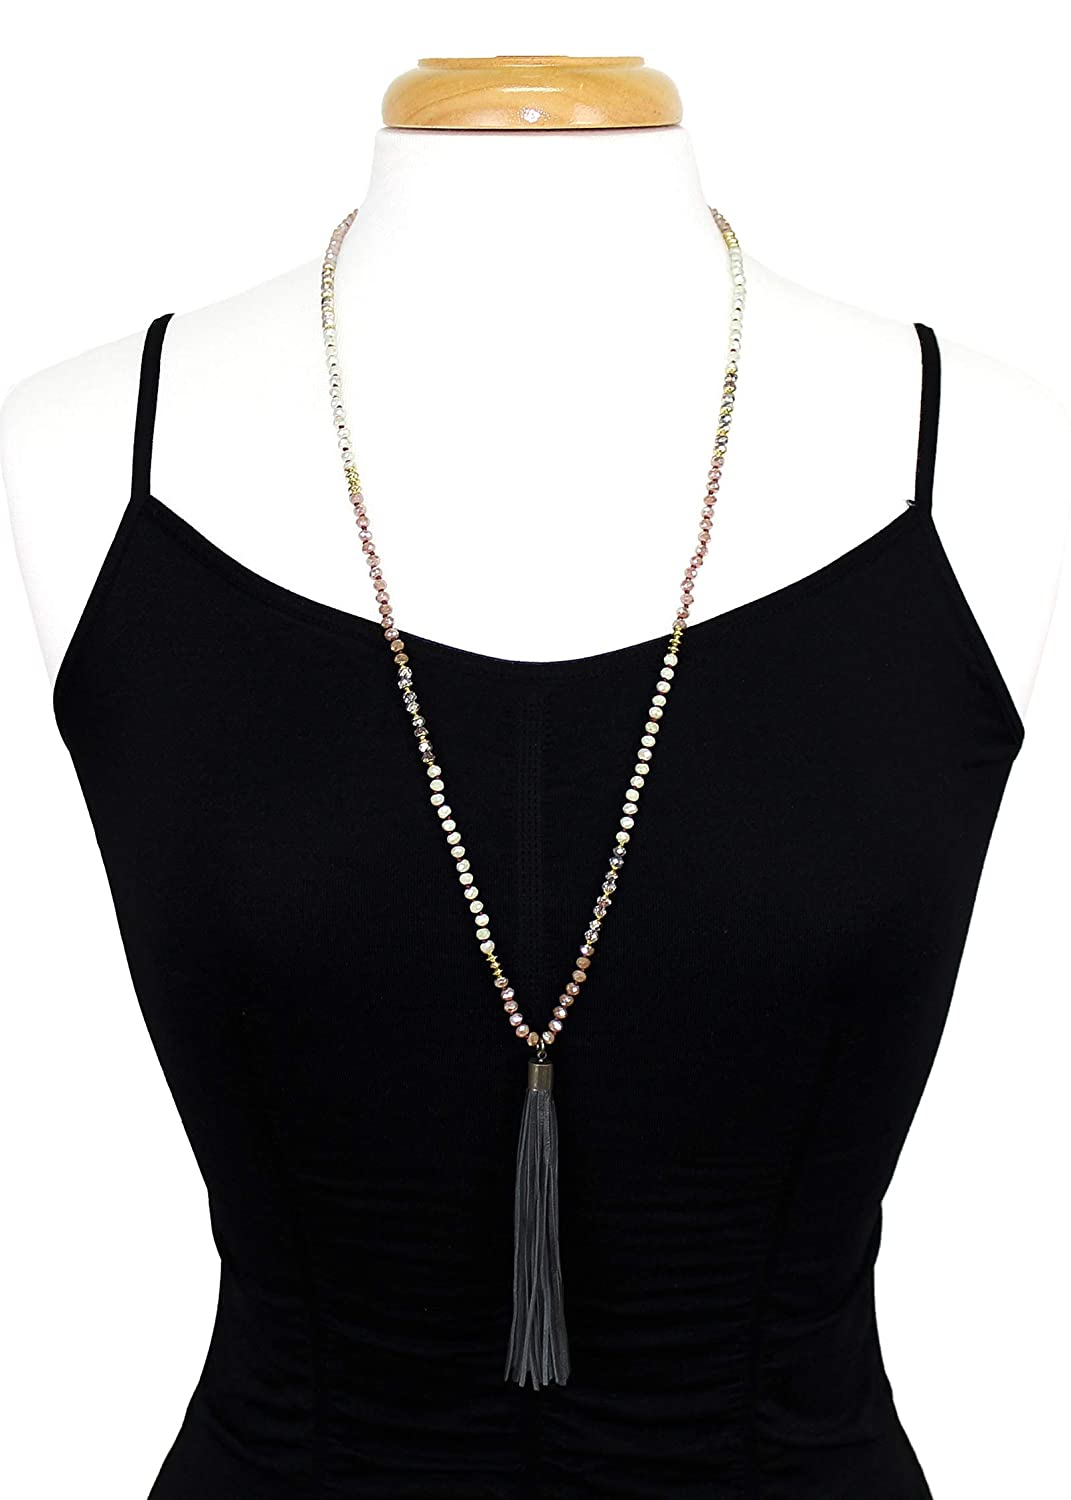 POMINA Knotted Glass Beaded Long Necklaces Genuine Leather Tassel Pendant Long Necklaces for Women